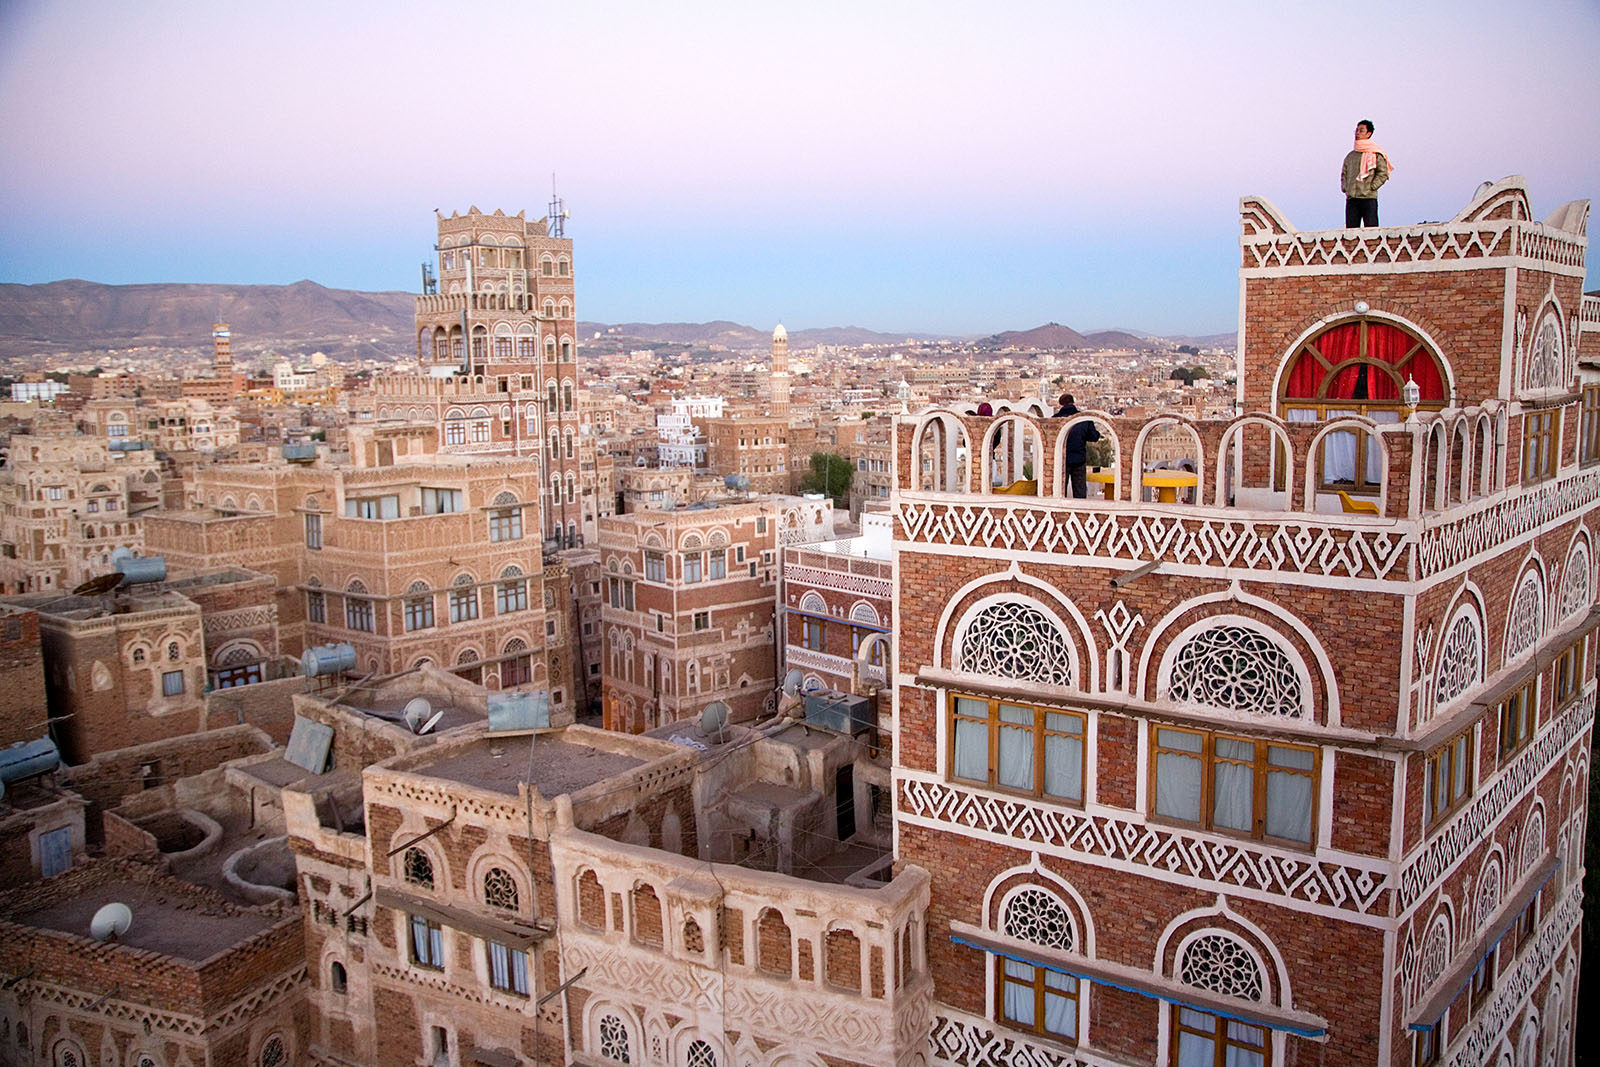 arabia_middle_east_yemen_Sanaa_old_city_architecture_travel_adventure-1600x1067.jpg